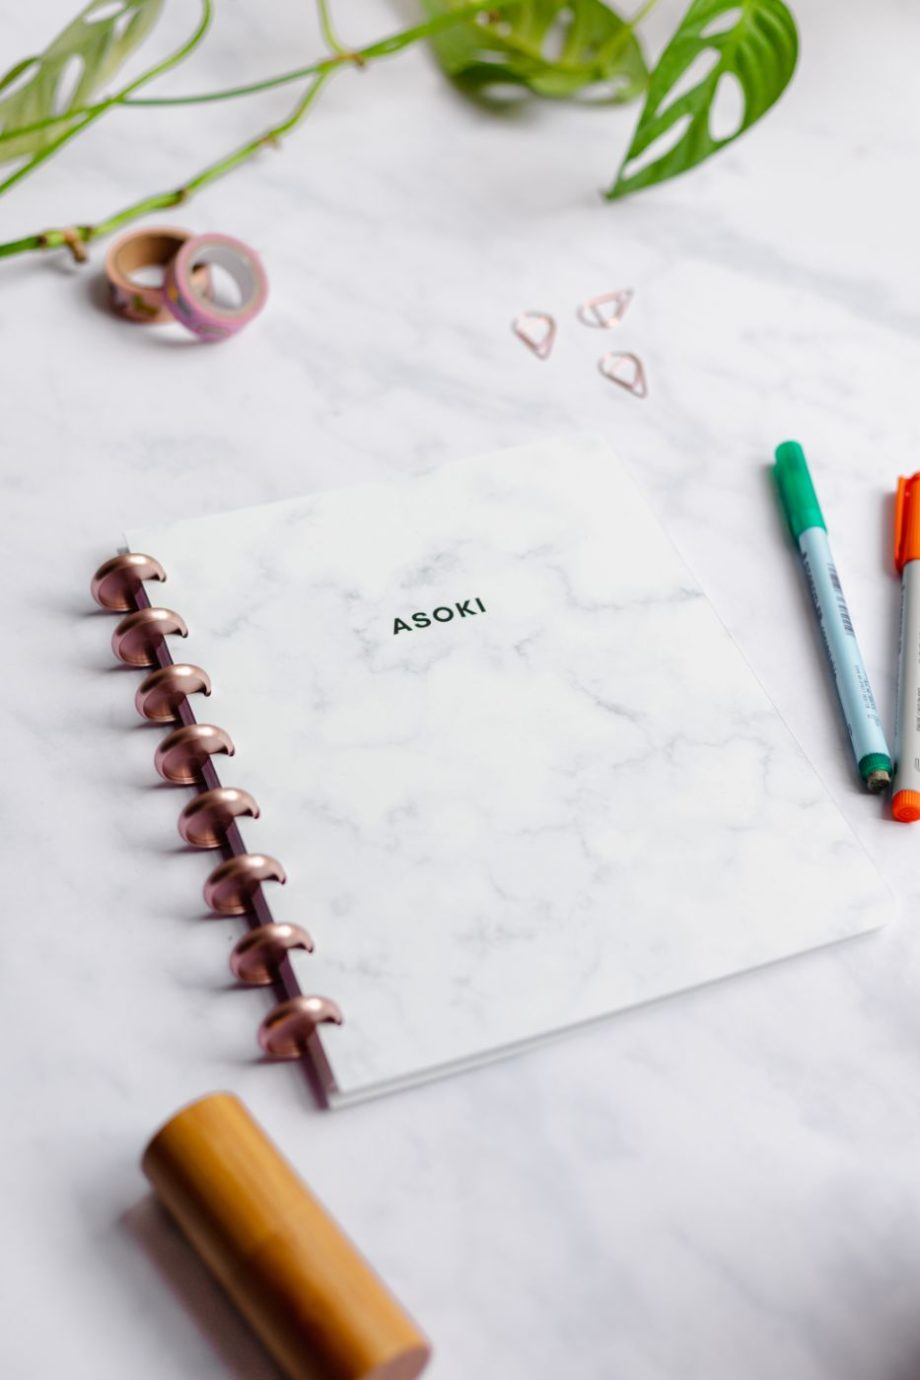 Asoki marble notebook with rose-gold metal discs next to bamboo spray and pens in orange and green on marble background